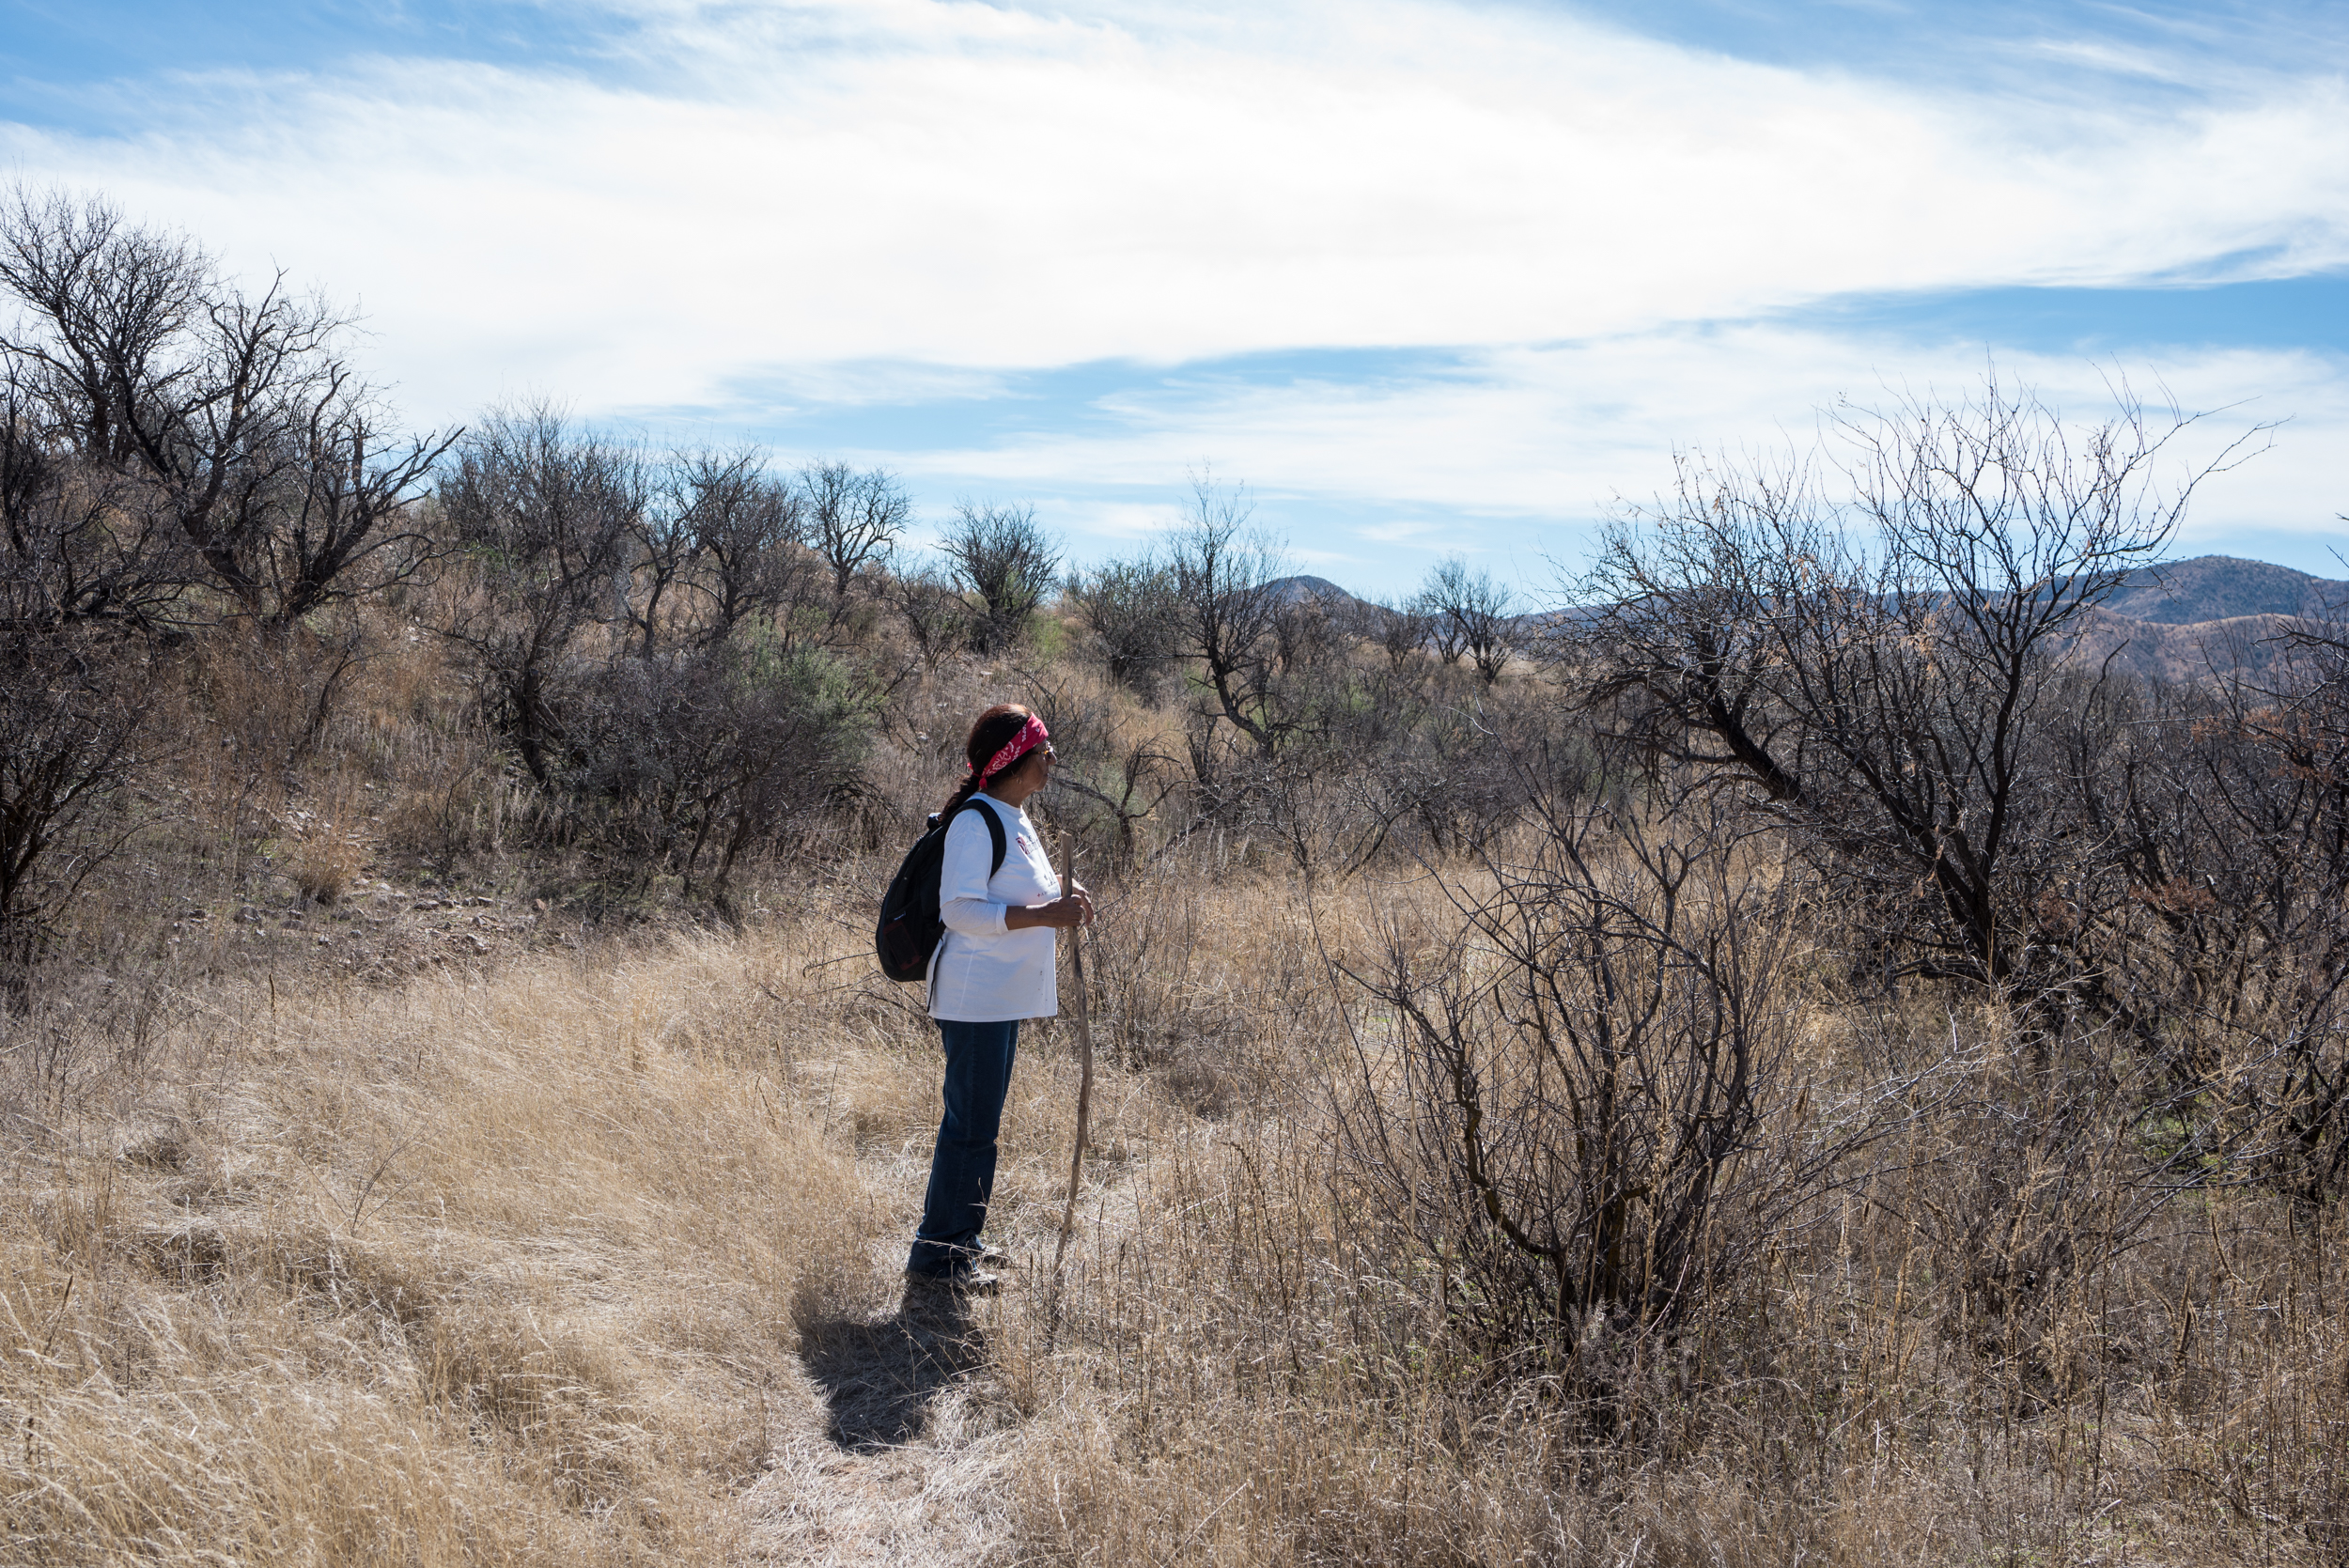 Fighting for the Life of Migrants in the Sonoran Desert